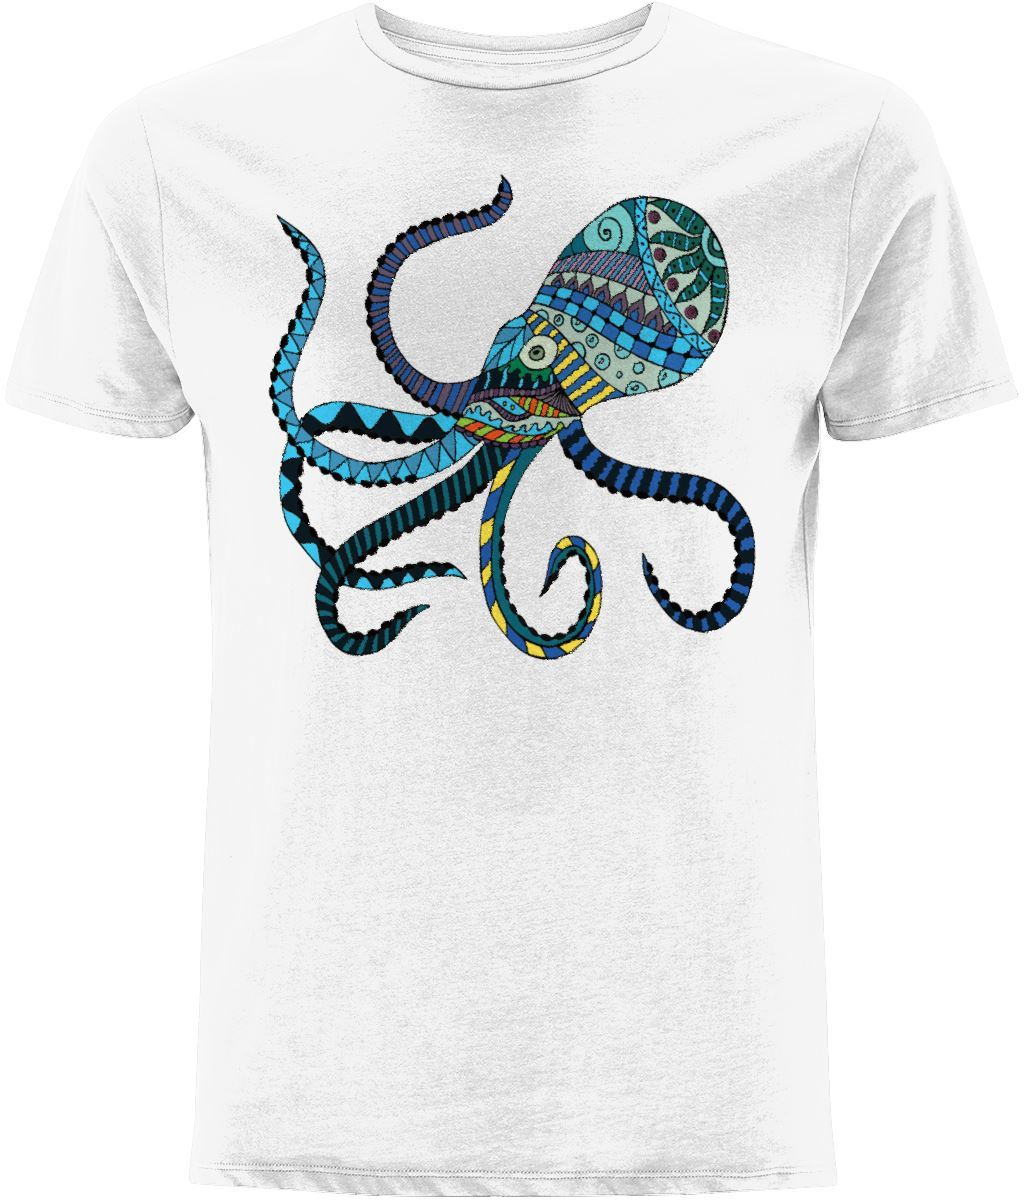 Blue Octopus T-Shirt Clothing IndianBelieves White X-Small